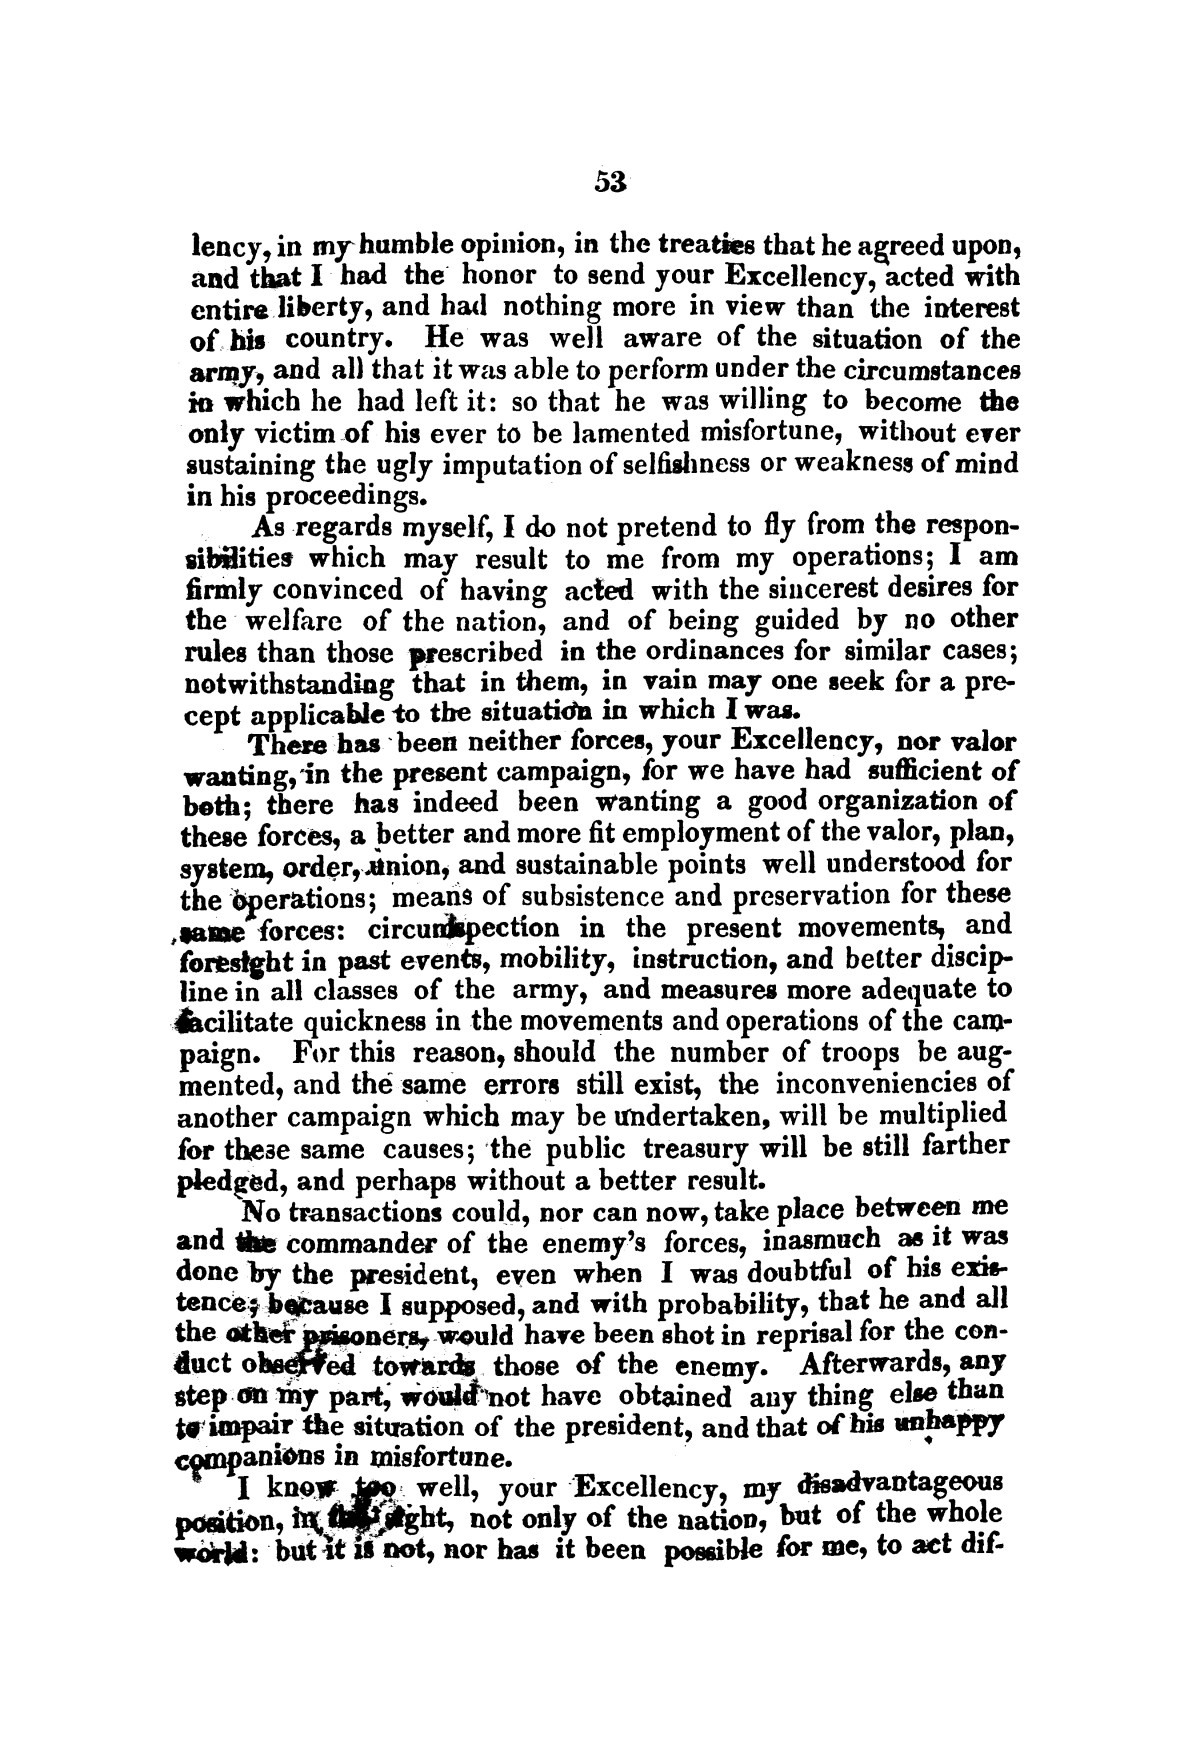 Evacuation of Texas : translation of the Representation addressed to the supreme government / by Vicente Filisola, in defence of his honor, and explanation of his operations as commander-in-chief of the army against Texas.                                                                                                      [Sequence #]: 56 of 72